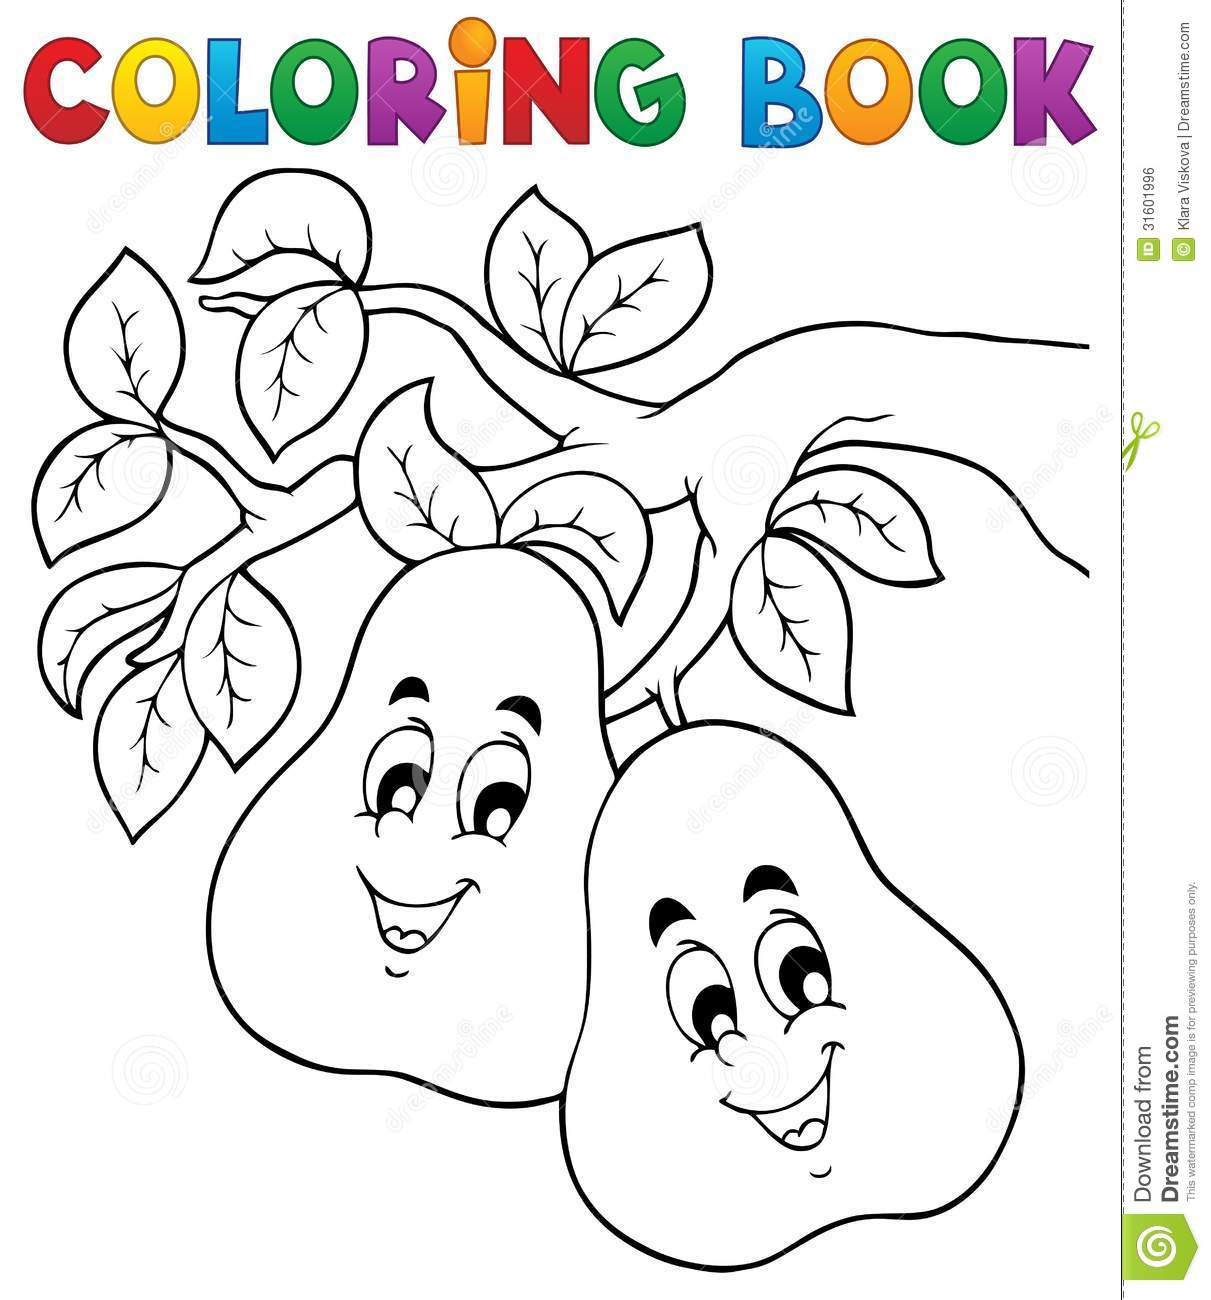 Book Coloring Eps10 Fruit